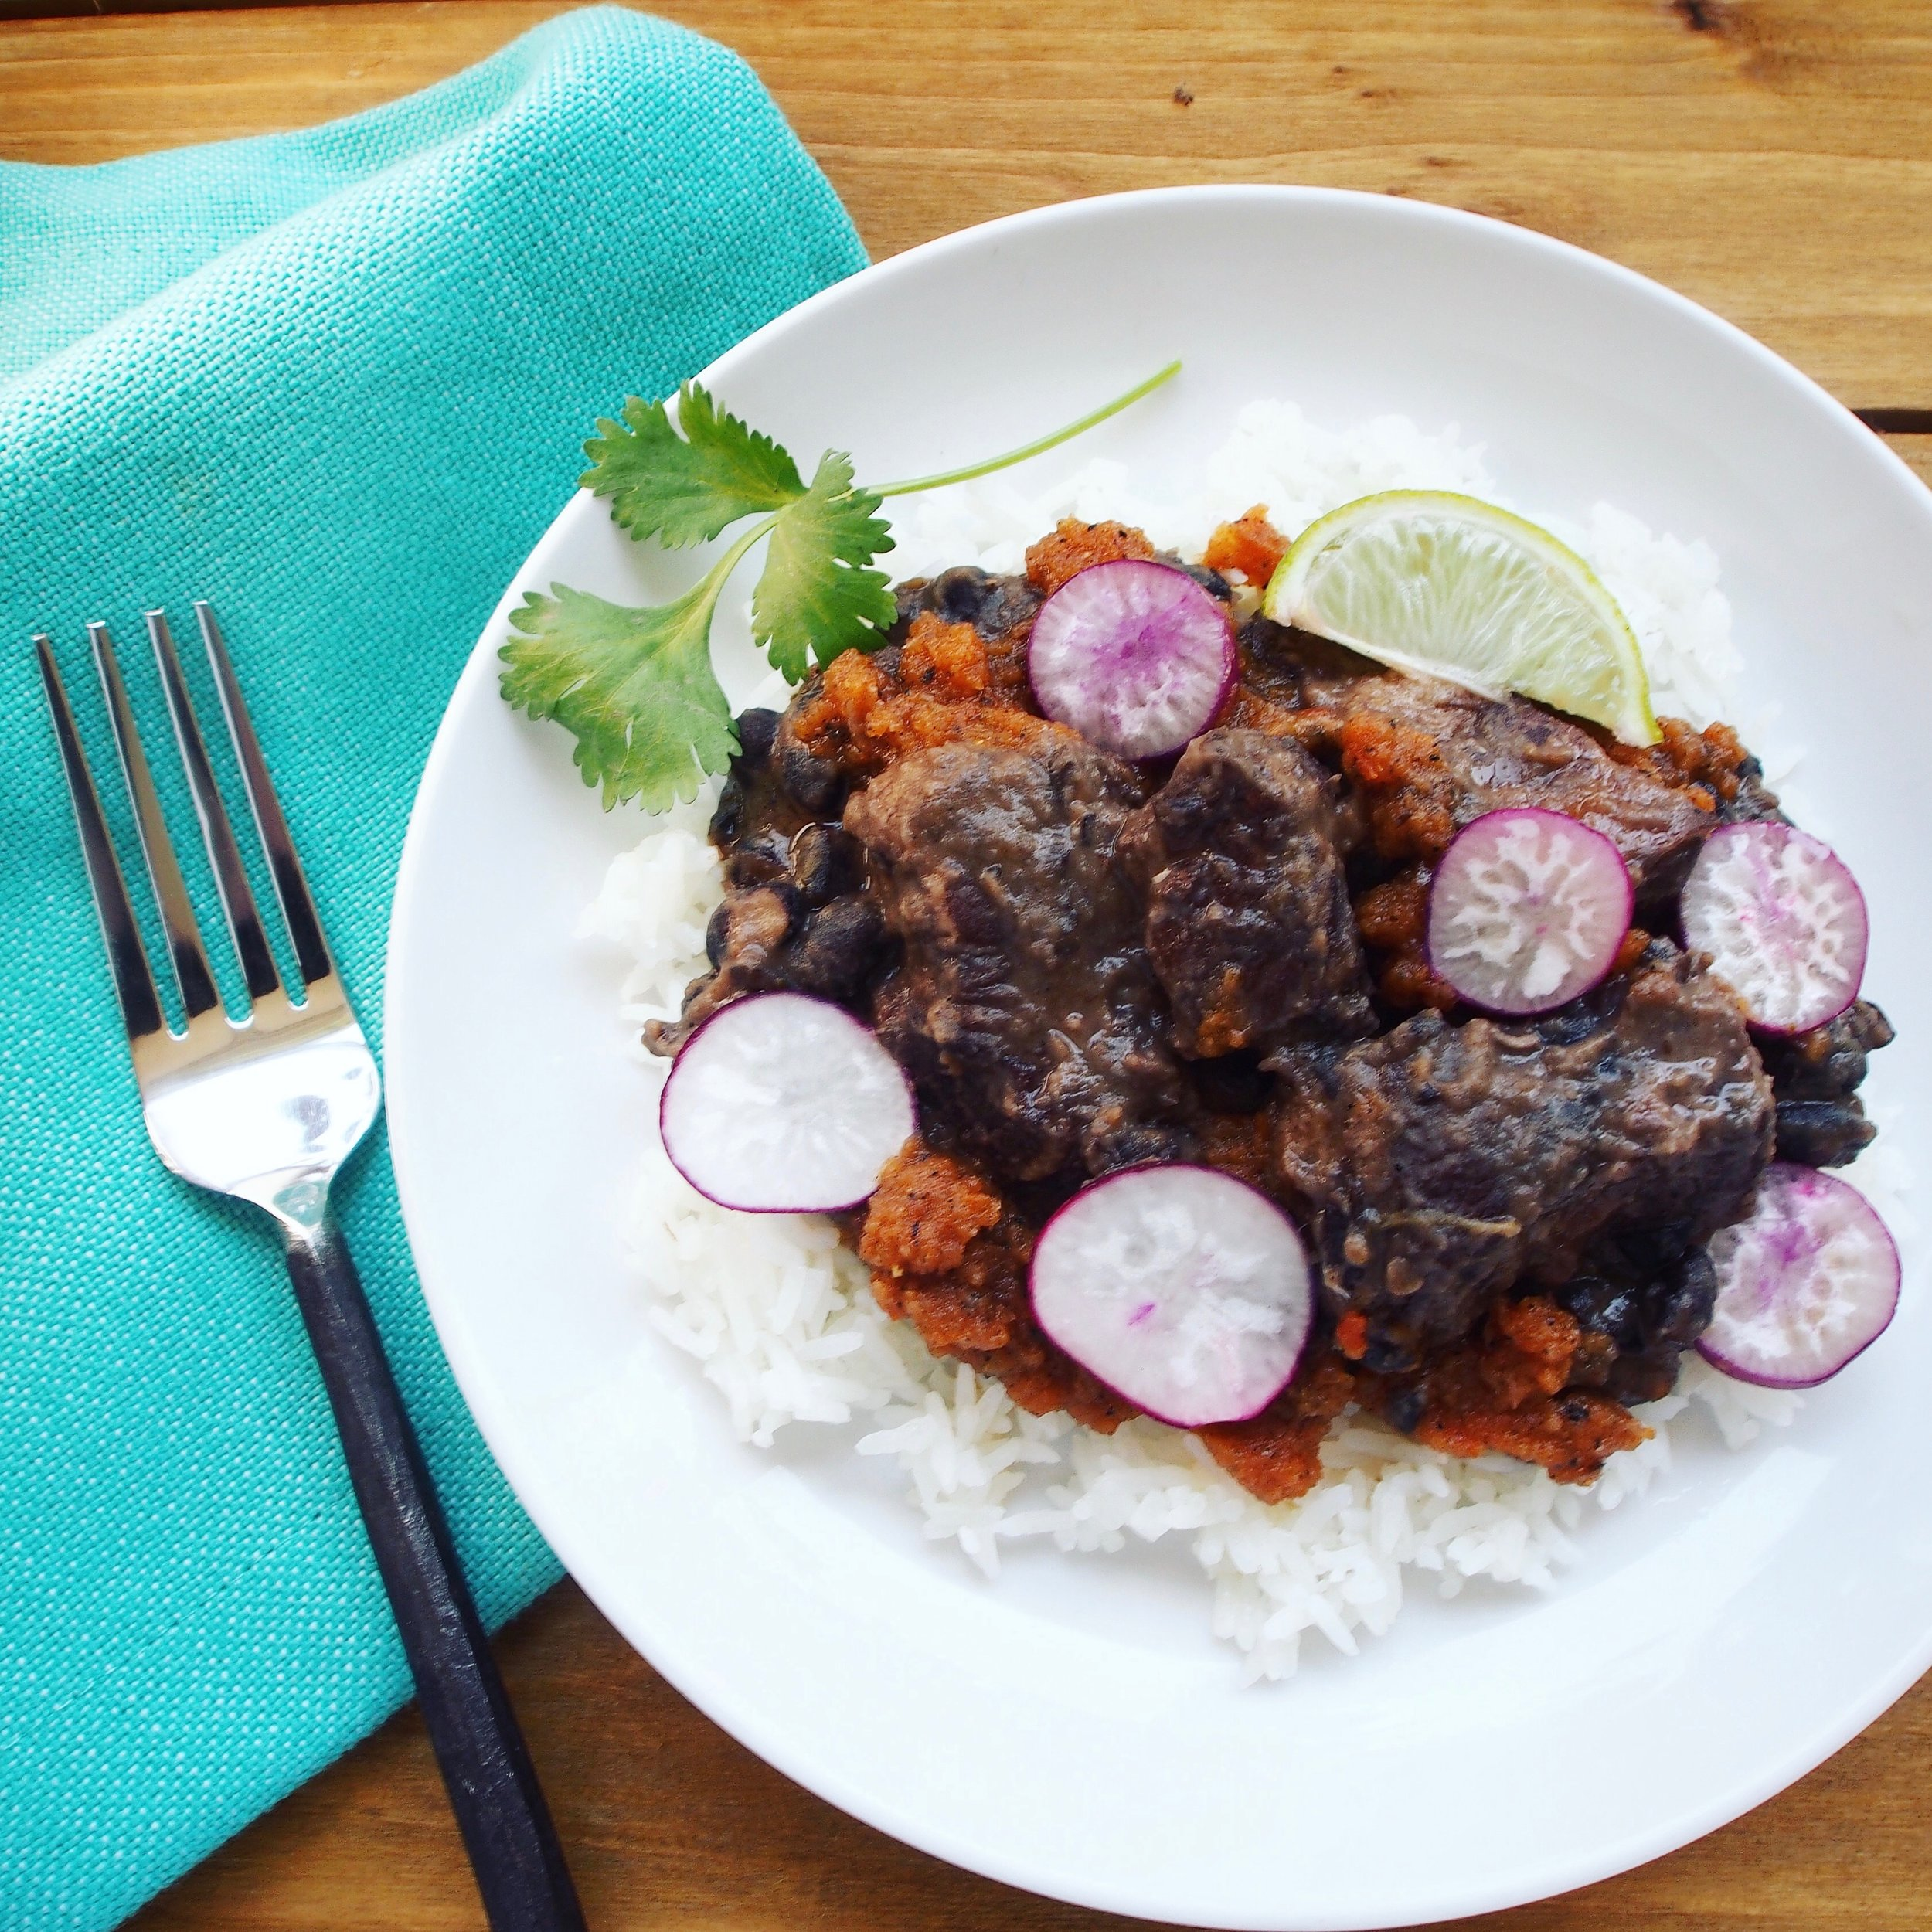 Fijol con Puerco is a Pork Black and Bean Stew. This Mexican Stew is spicy with habanero powder and jalapenos. It uses spiceology's sweet and spicy habanero rub. The slow-cooked pork and beans are done in about 90 minutes.